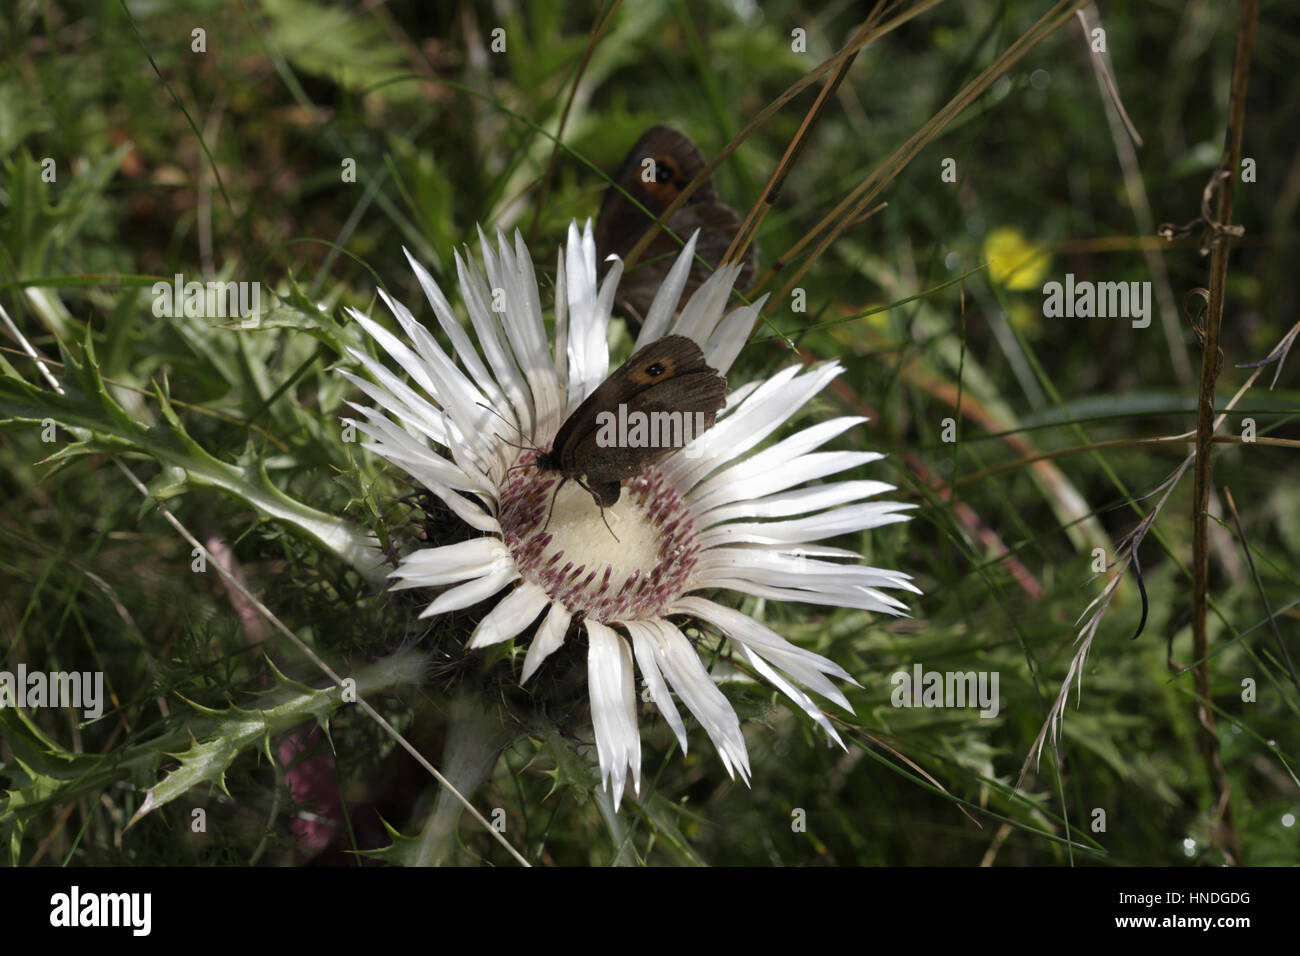 Silver or Alpine thistle (Carlina acaulis) and butterfly pollinating - Stock Image